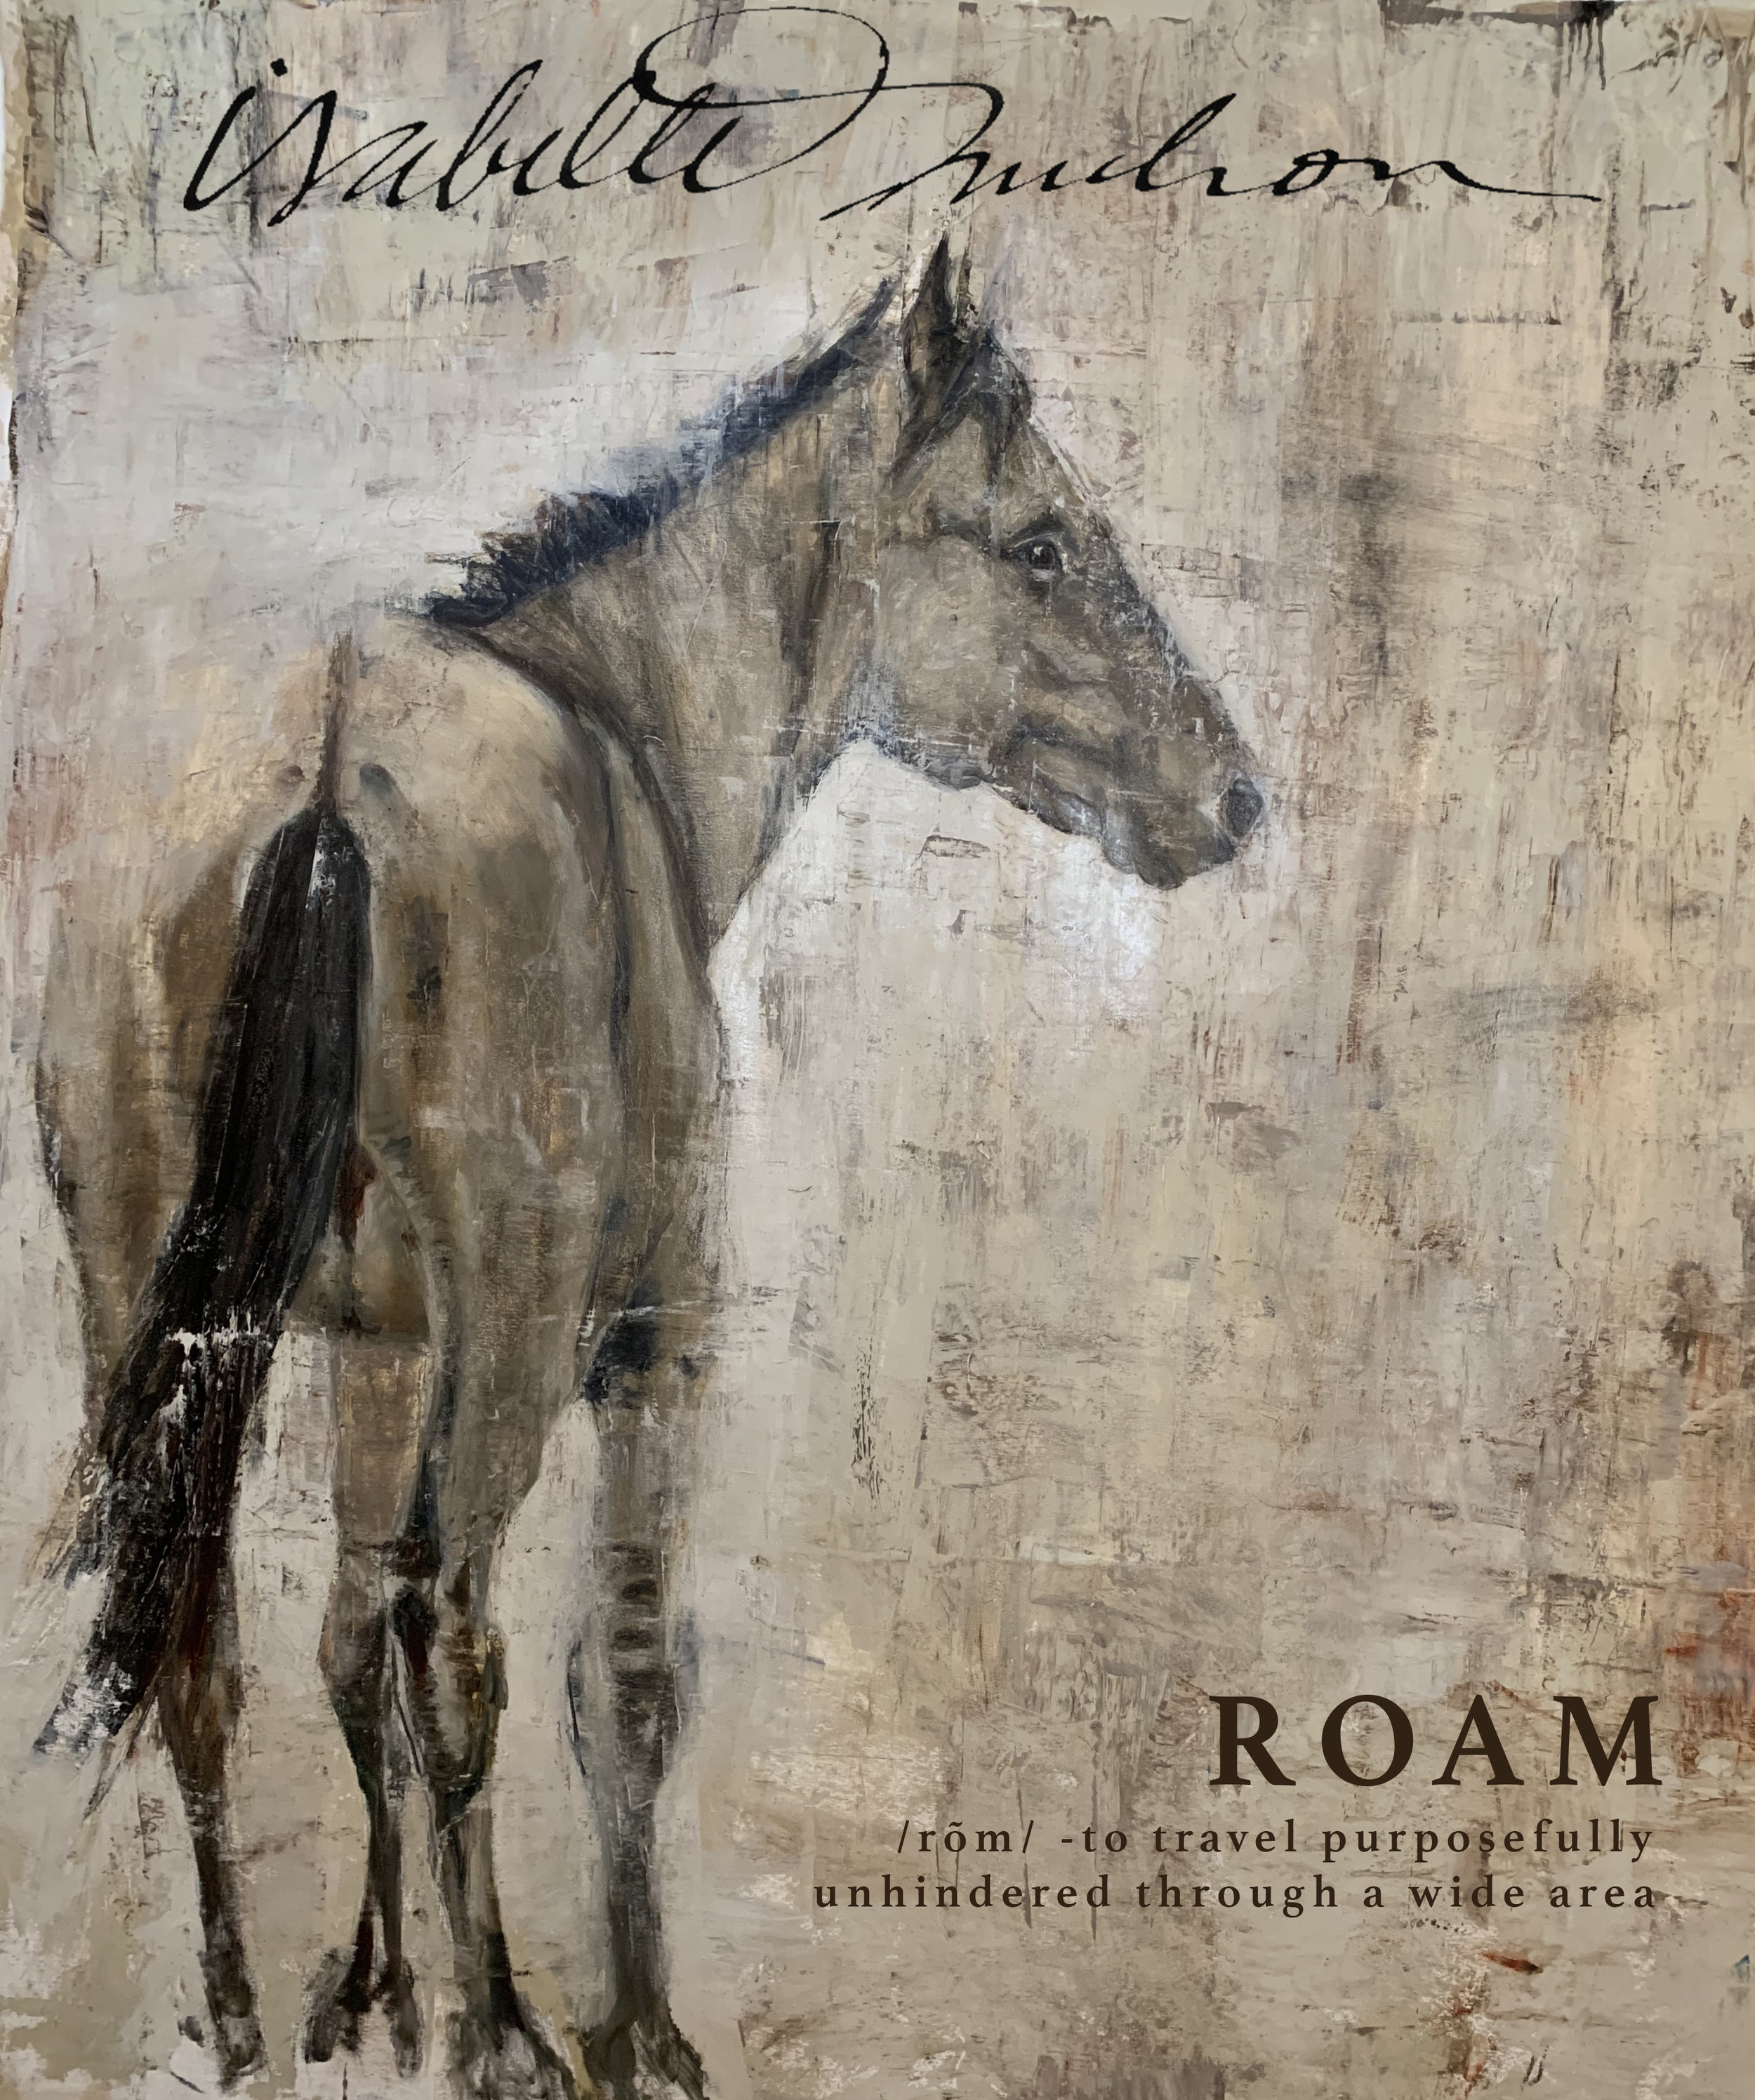 ROAM - /rōm/ - to travel purposefully unhindered through a wide areaA Painted Collection of Observations of The True American Legend…Art Sweet Art Gallery • 2B Loudoun SW, Leesburg, VirginiaJuly 5-August 25, 2019